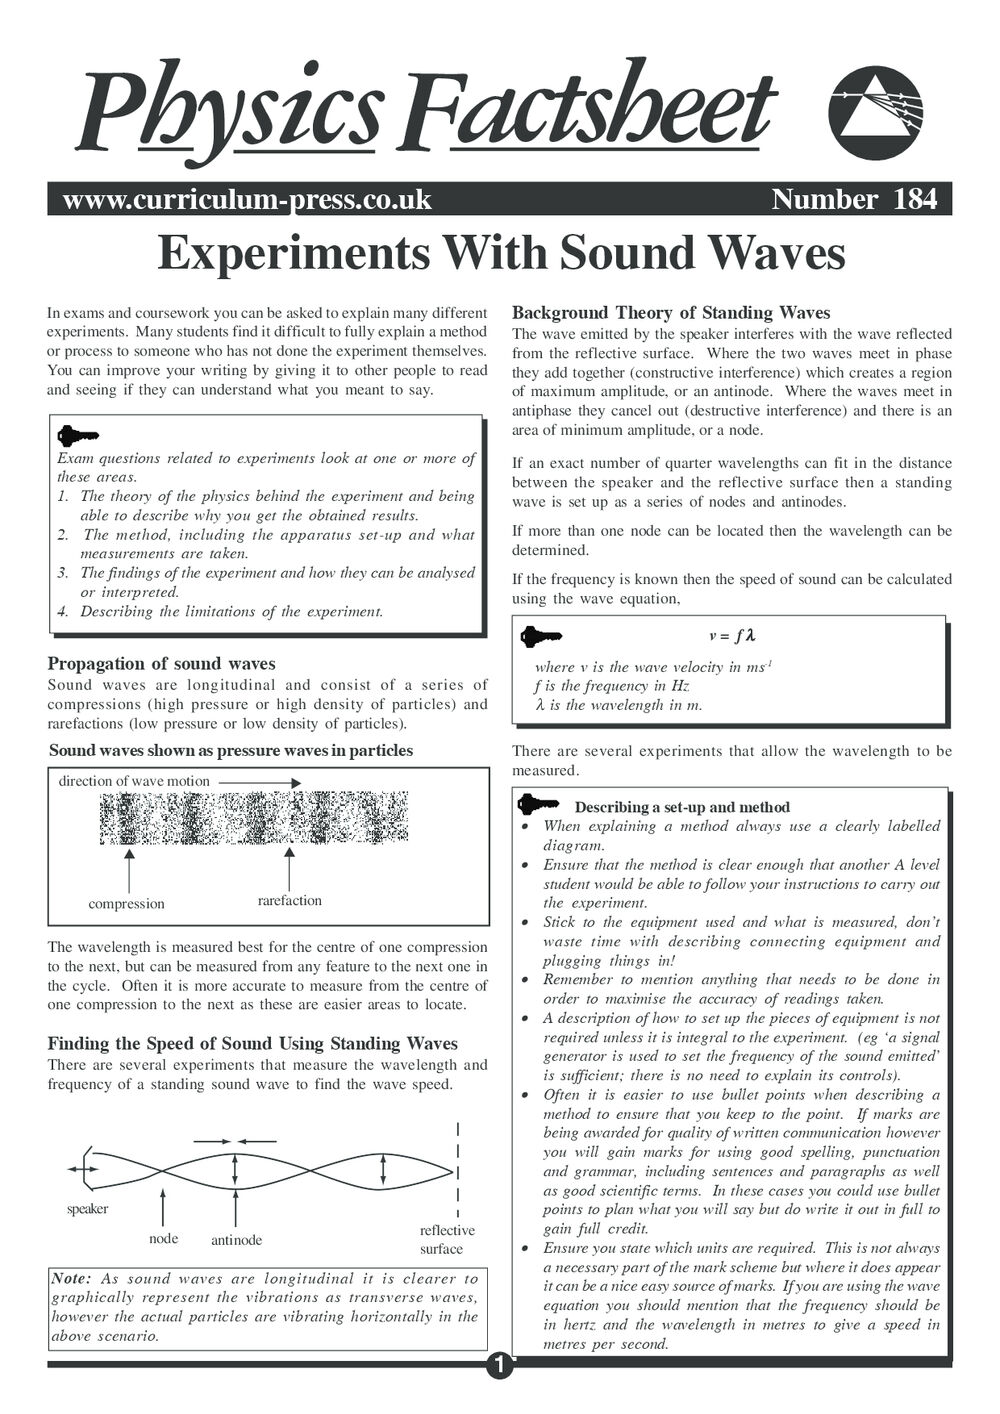 Experiments with Sound Waves - Curriculum Press